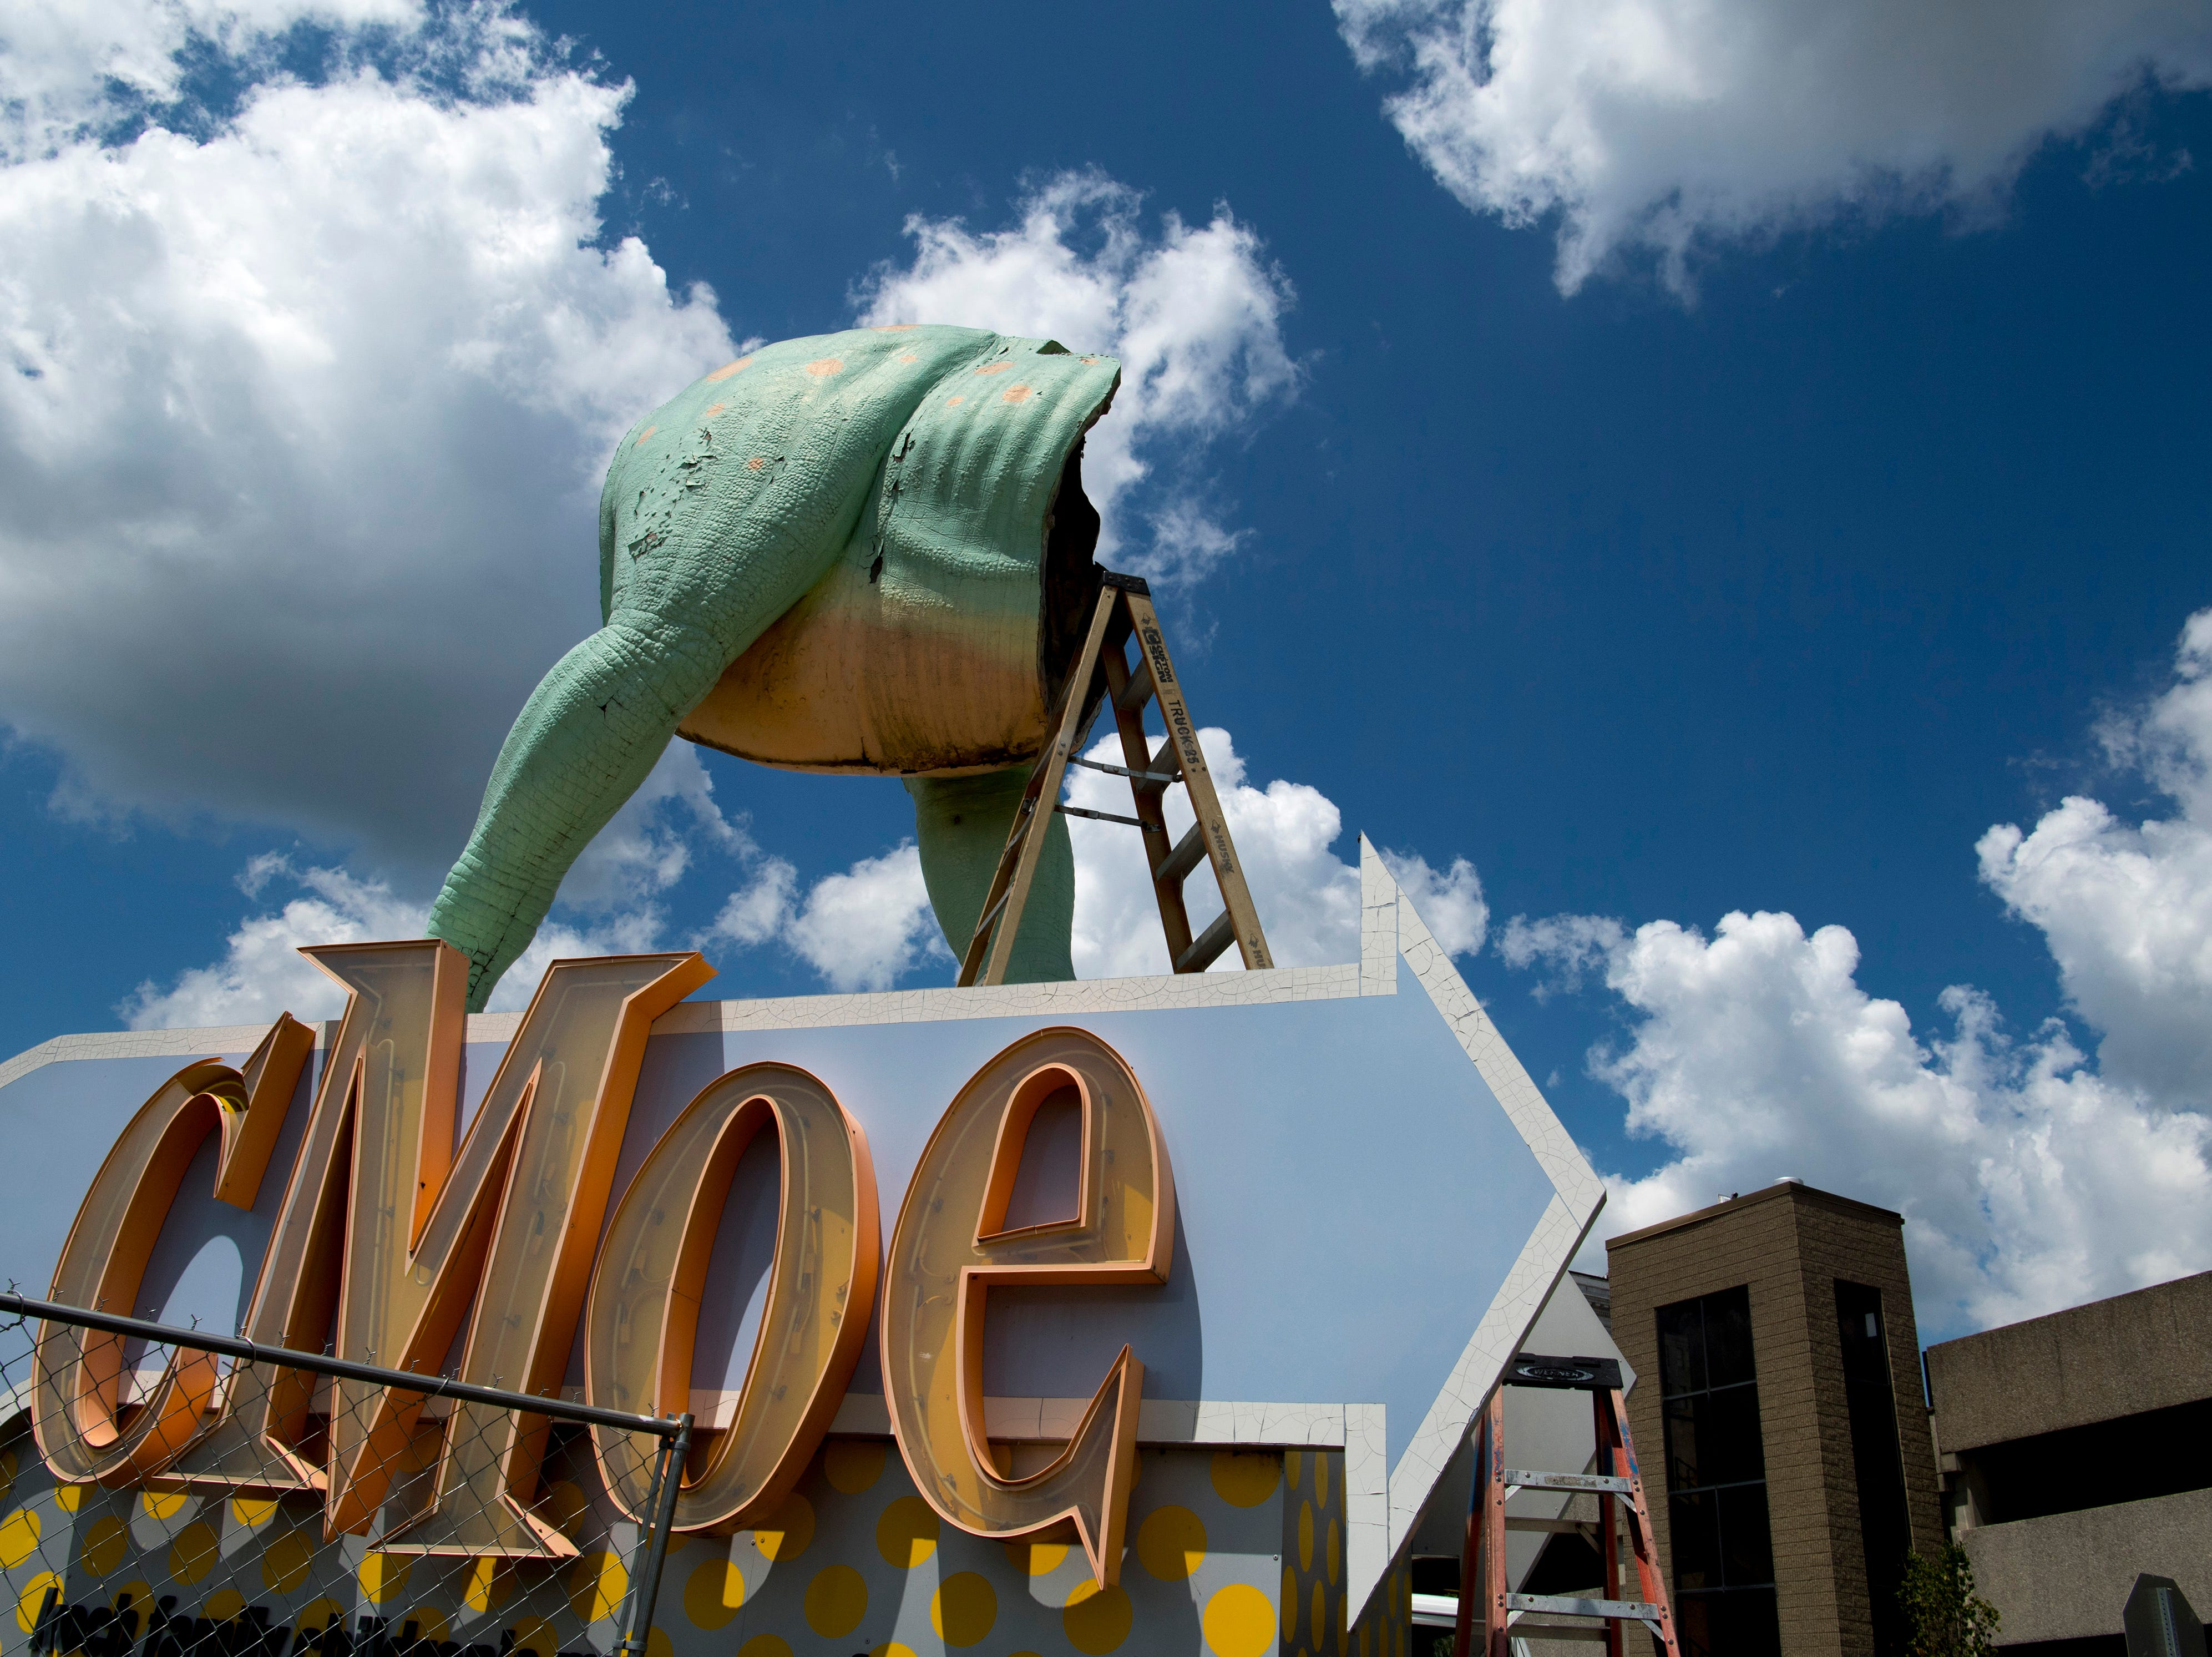 A headless and tailless Millie spends her last minutes perched across from the Koch Family Children's Museum of Evansville Wednesday morning. She was later transported to Custom Sign in Newburgh, Ind., for restoration. The new construction at her corner of Locust and Fifth streets is forcing her to find a new place to call home.